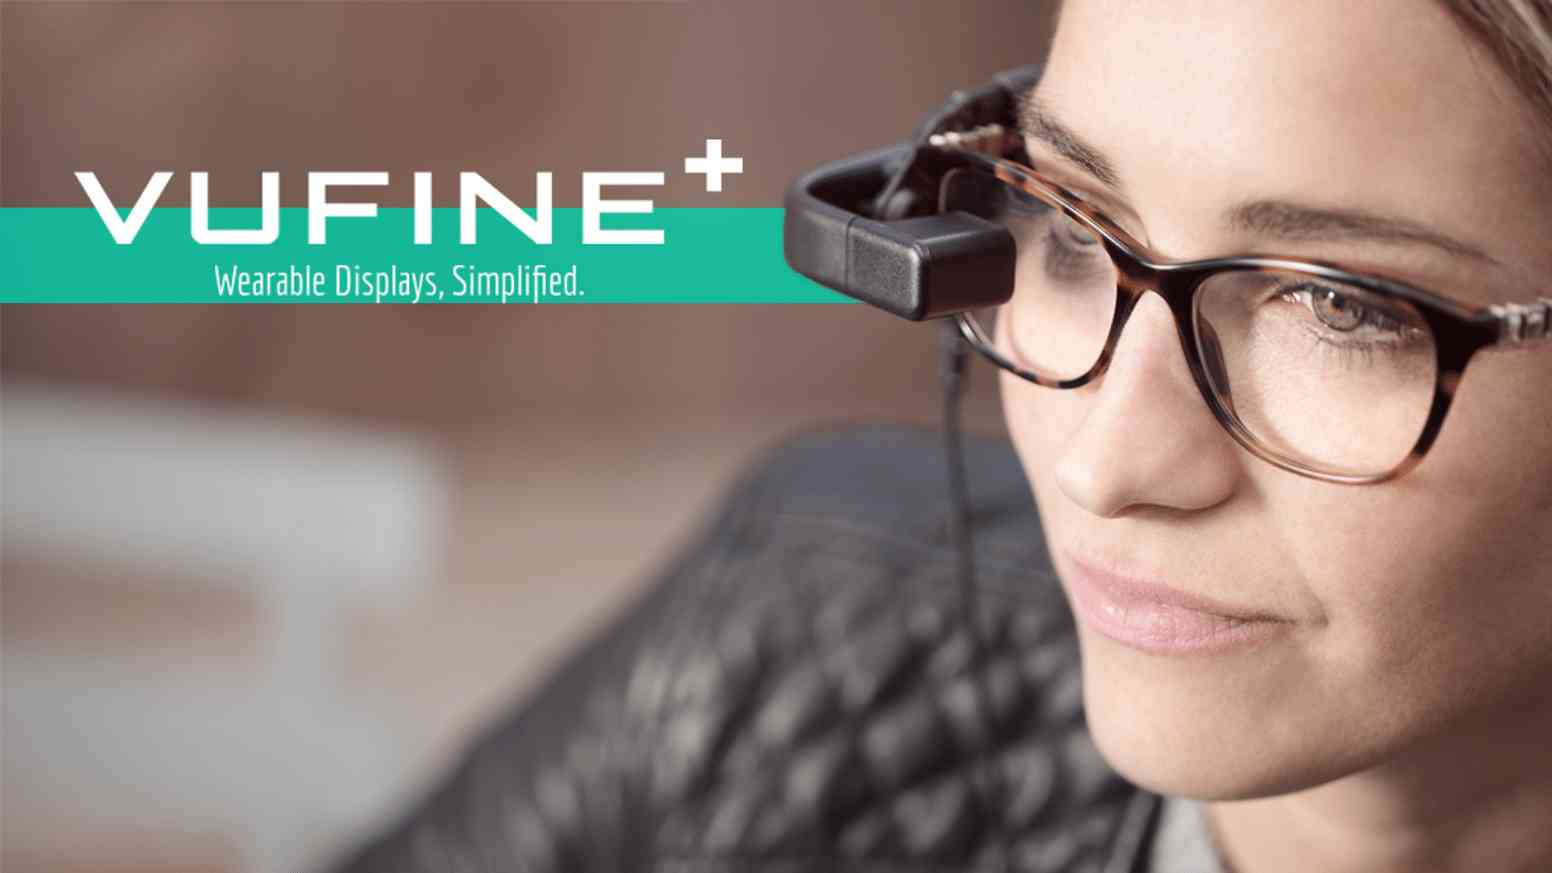 Vufine+ – Changing Ways of Display